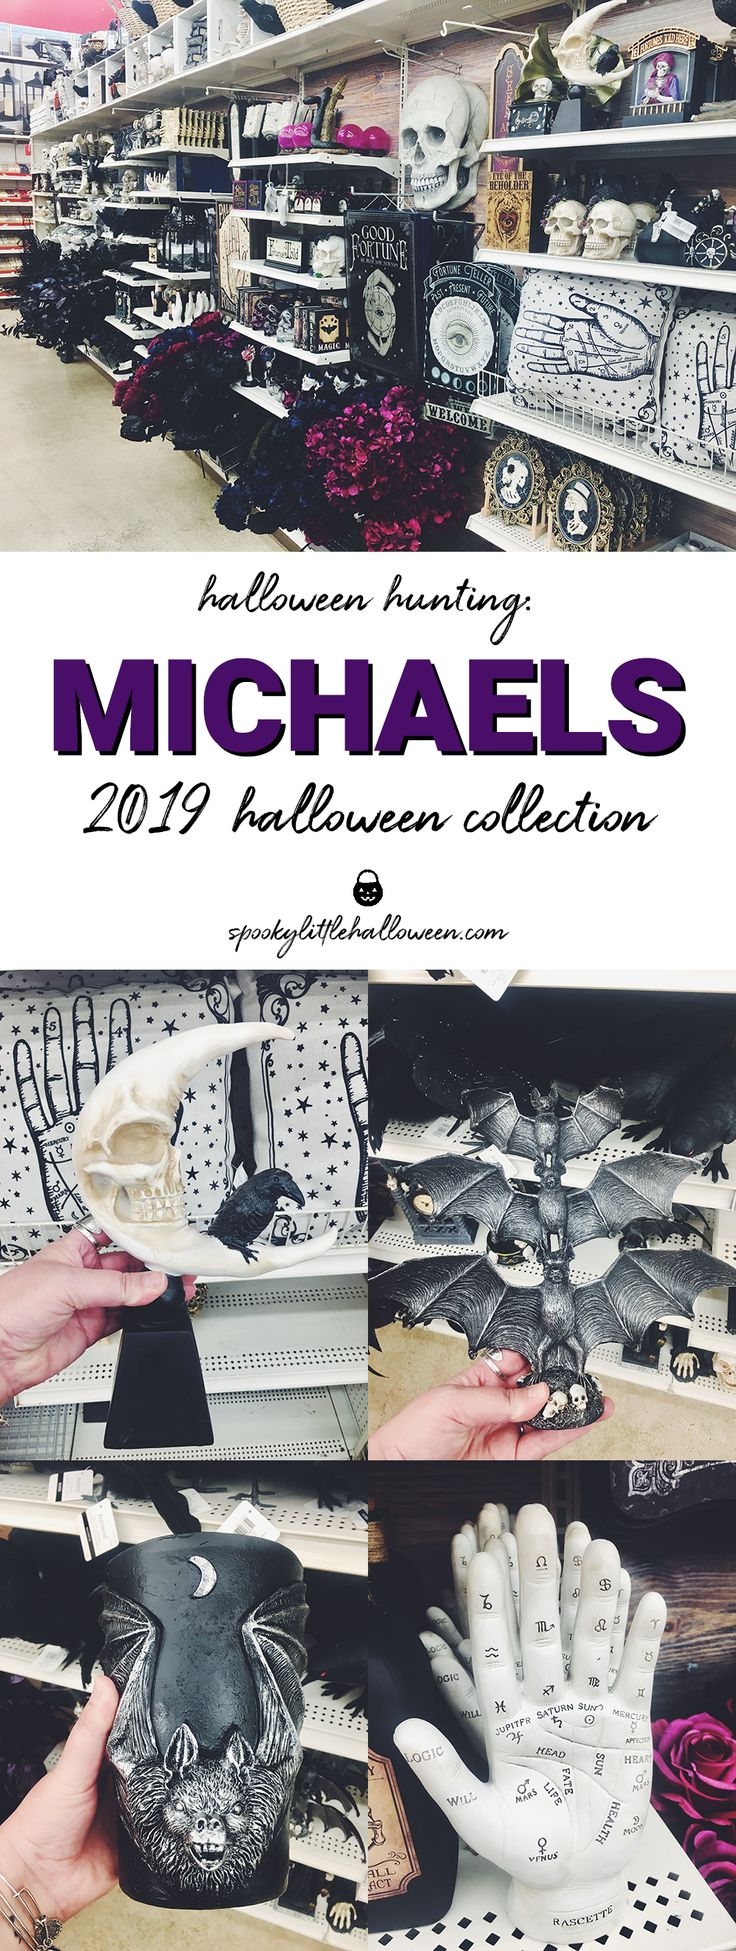 All of the gothic goodies you want from Michaels this yr